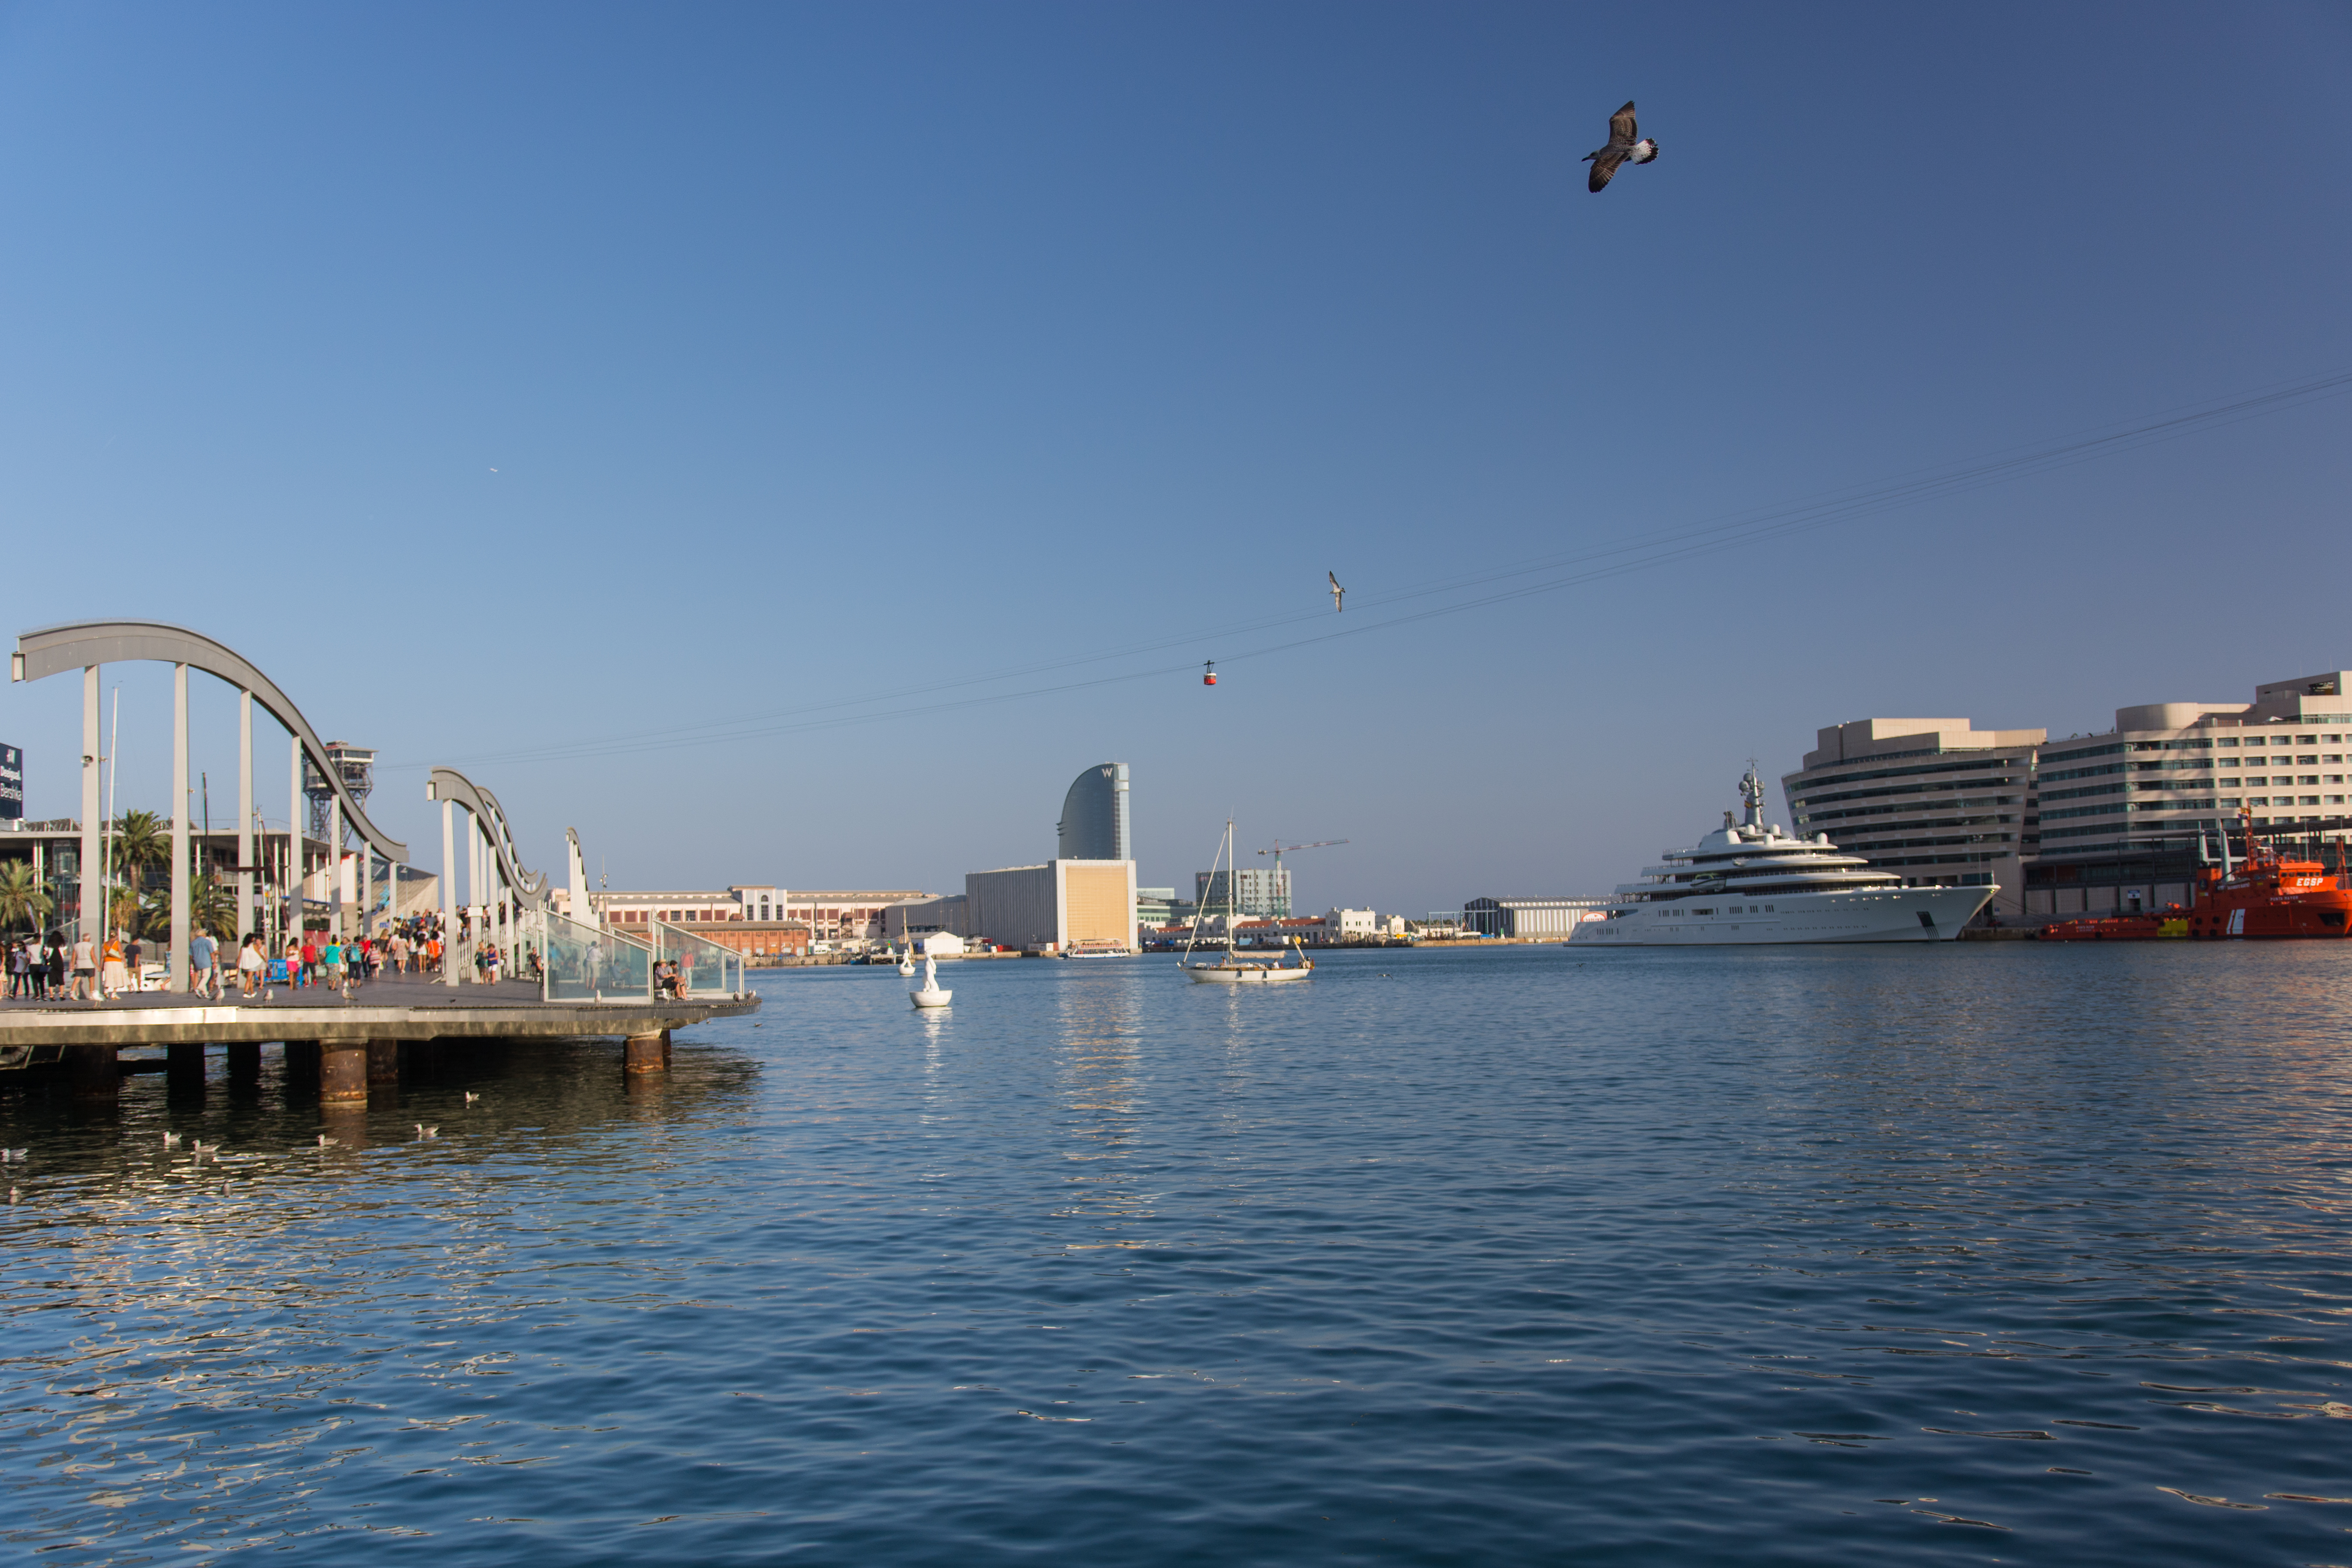 Puerto de barcelona photo